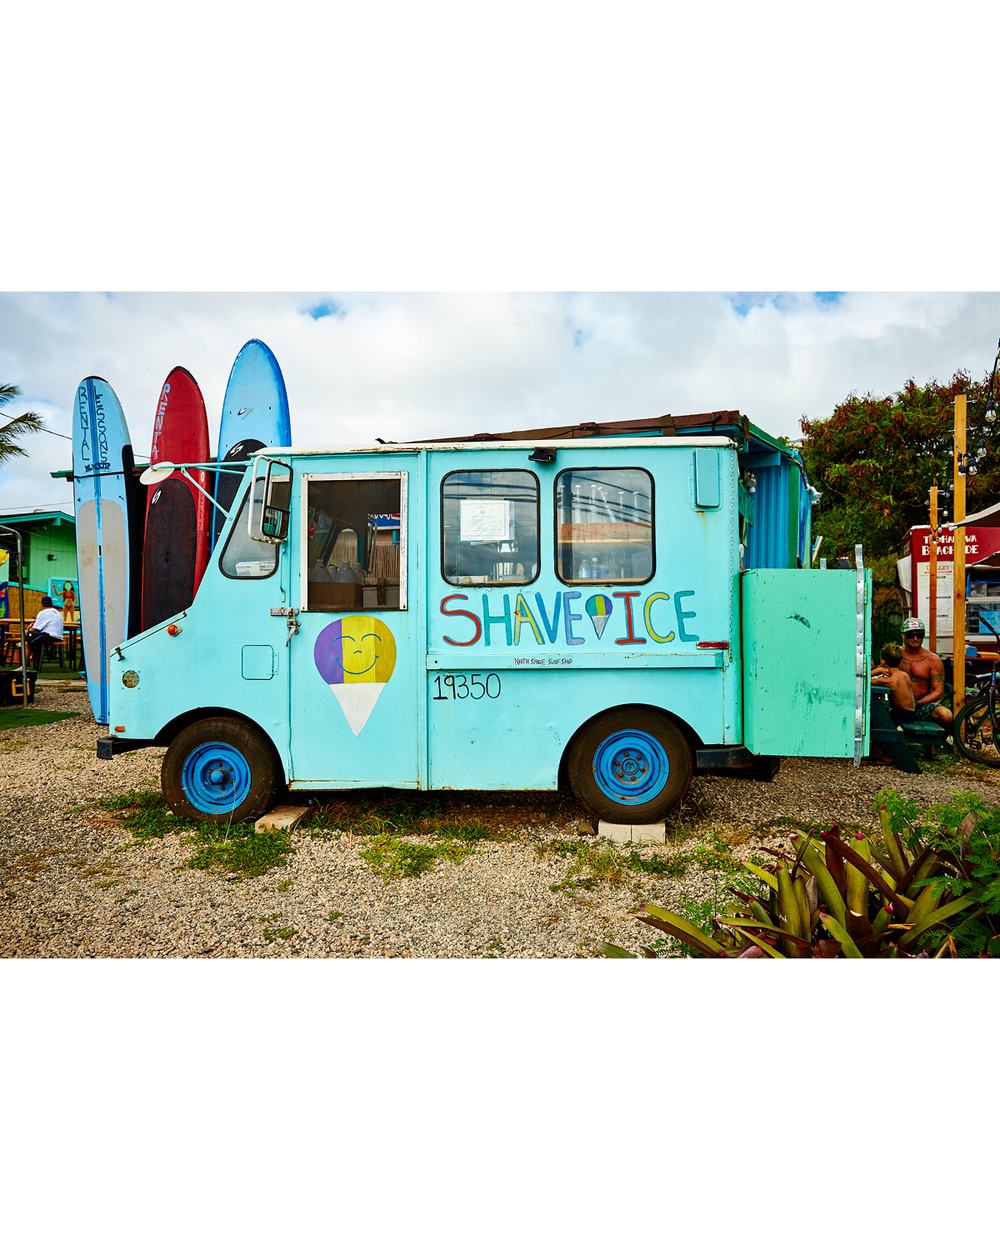 SHARKS COVE SHAVE ICE TRUCK